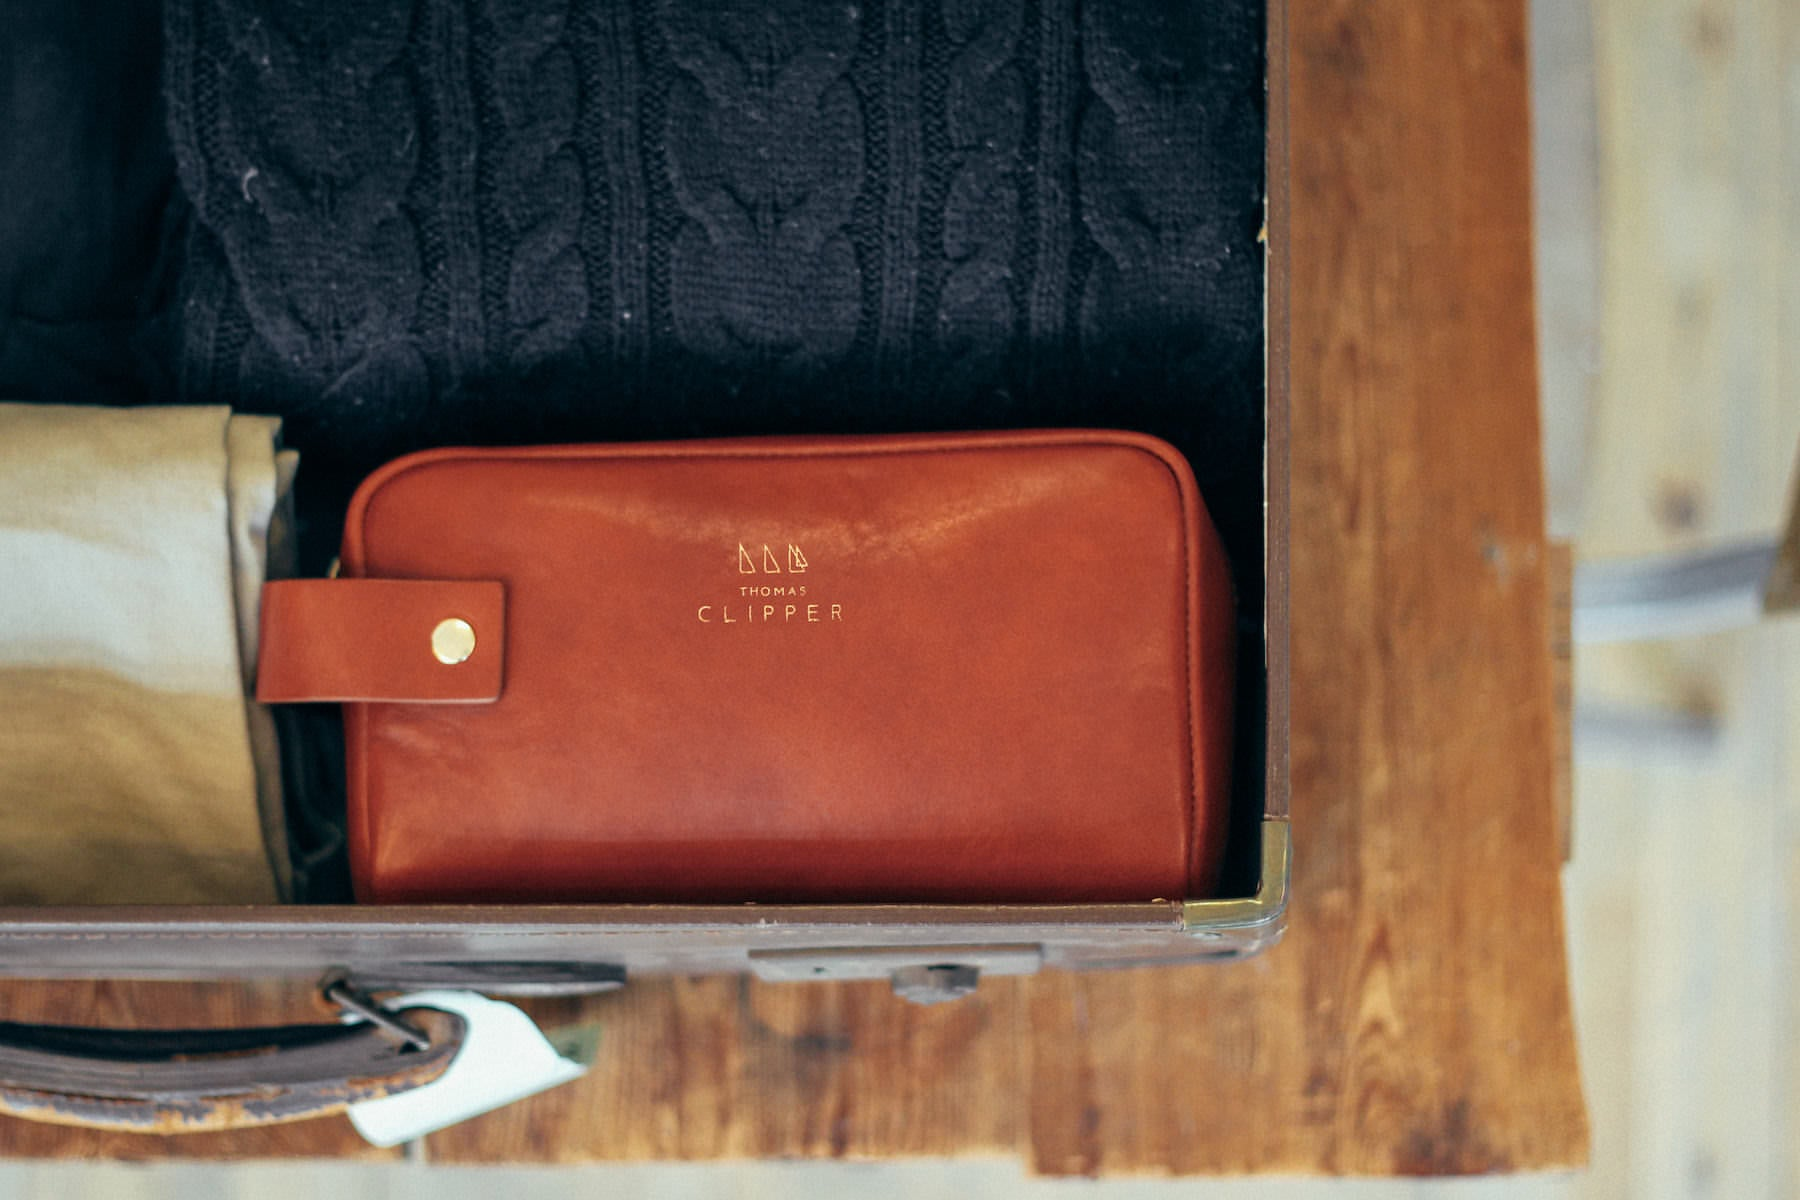 Designed in London, handmade in Italy from full grain vegetable tanned leather. With you on every adventure.